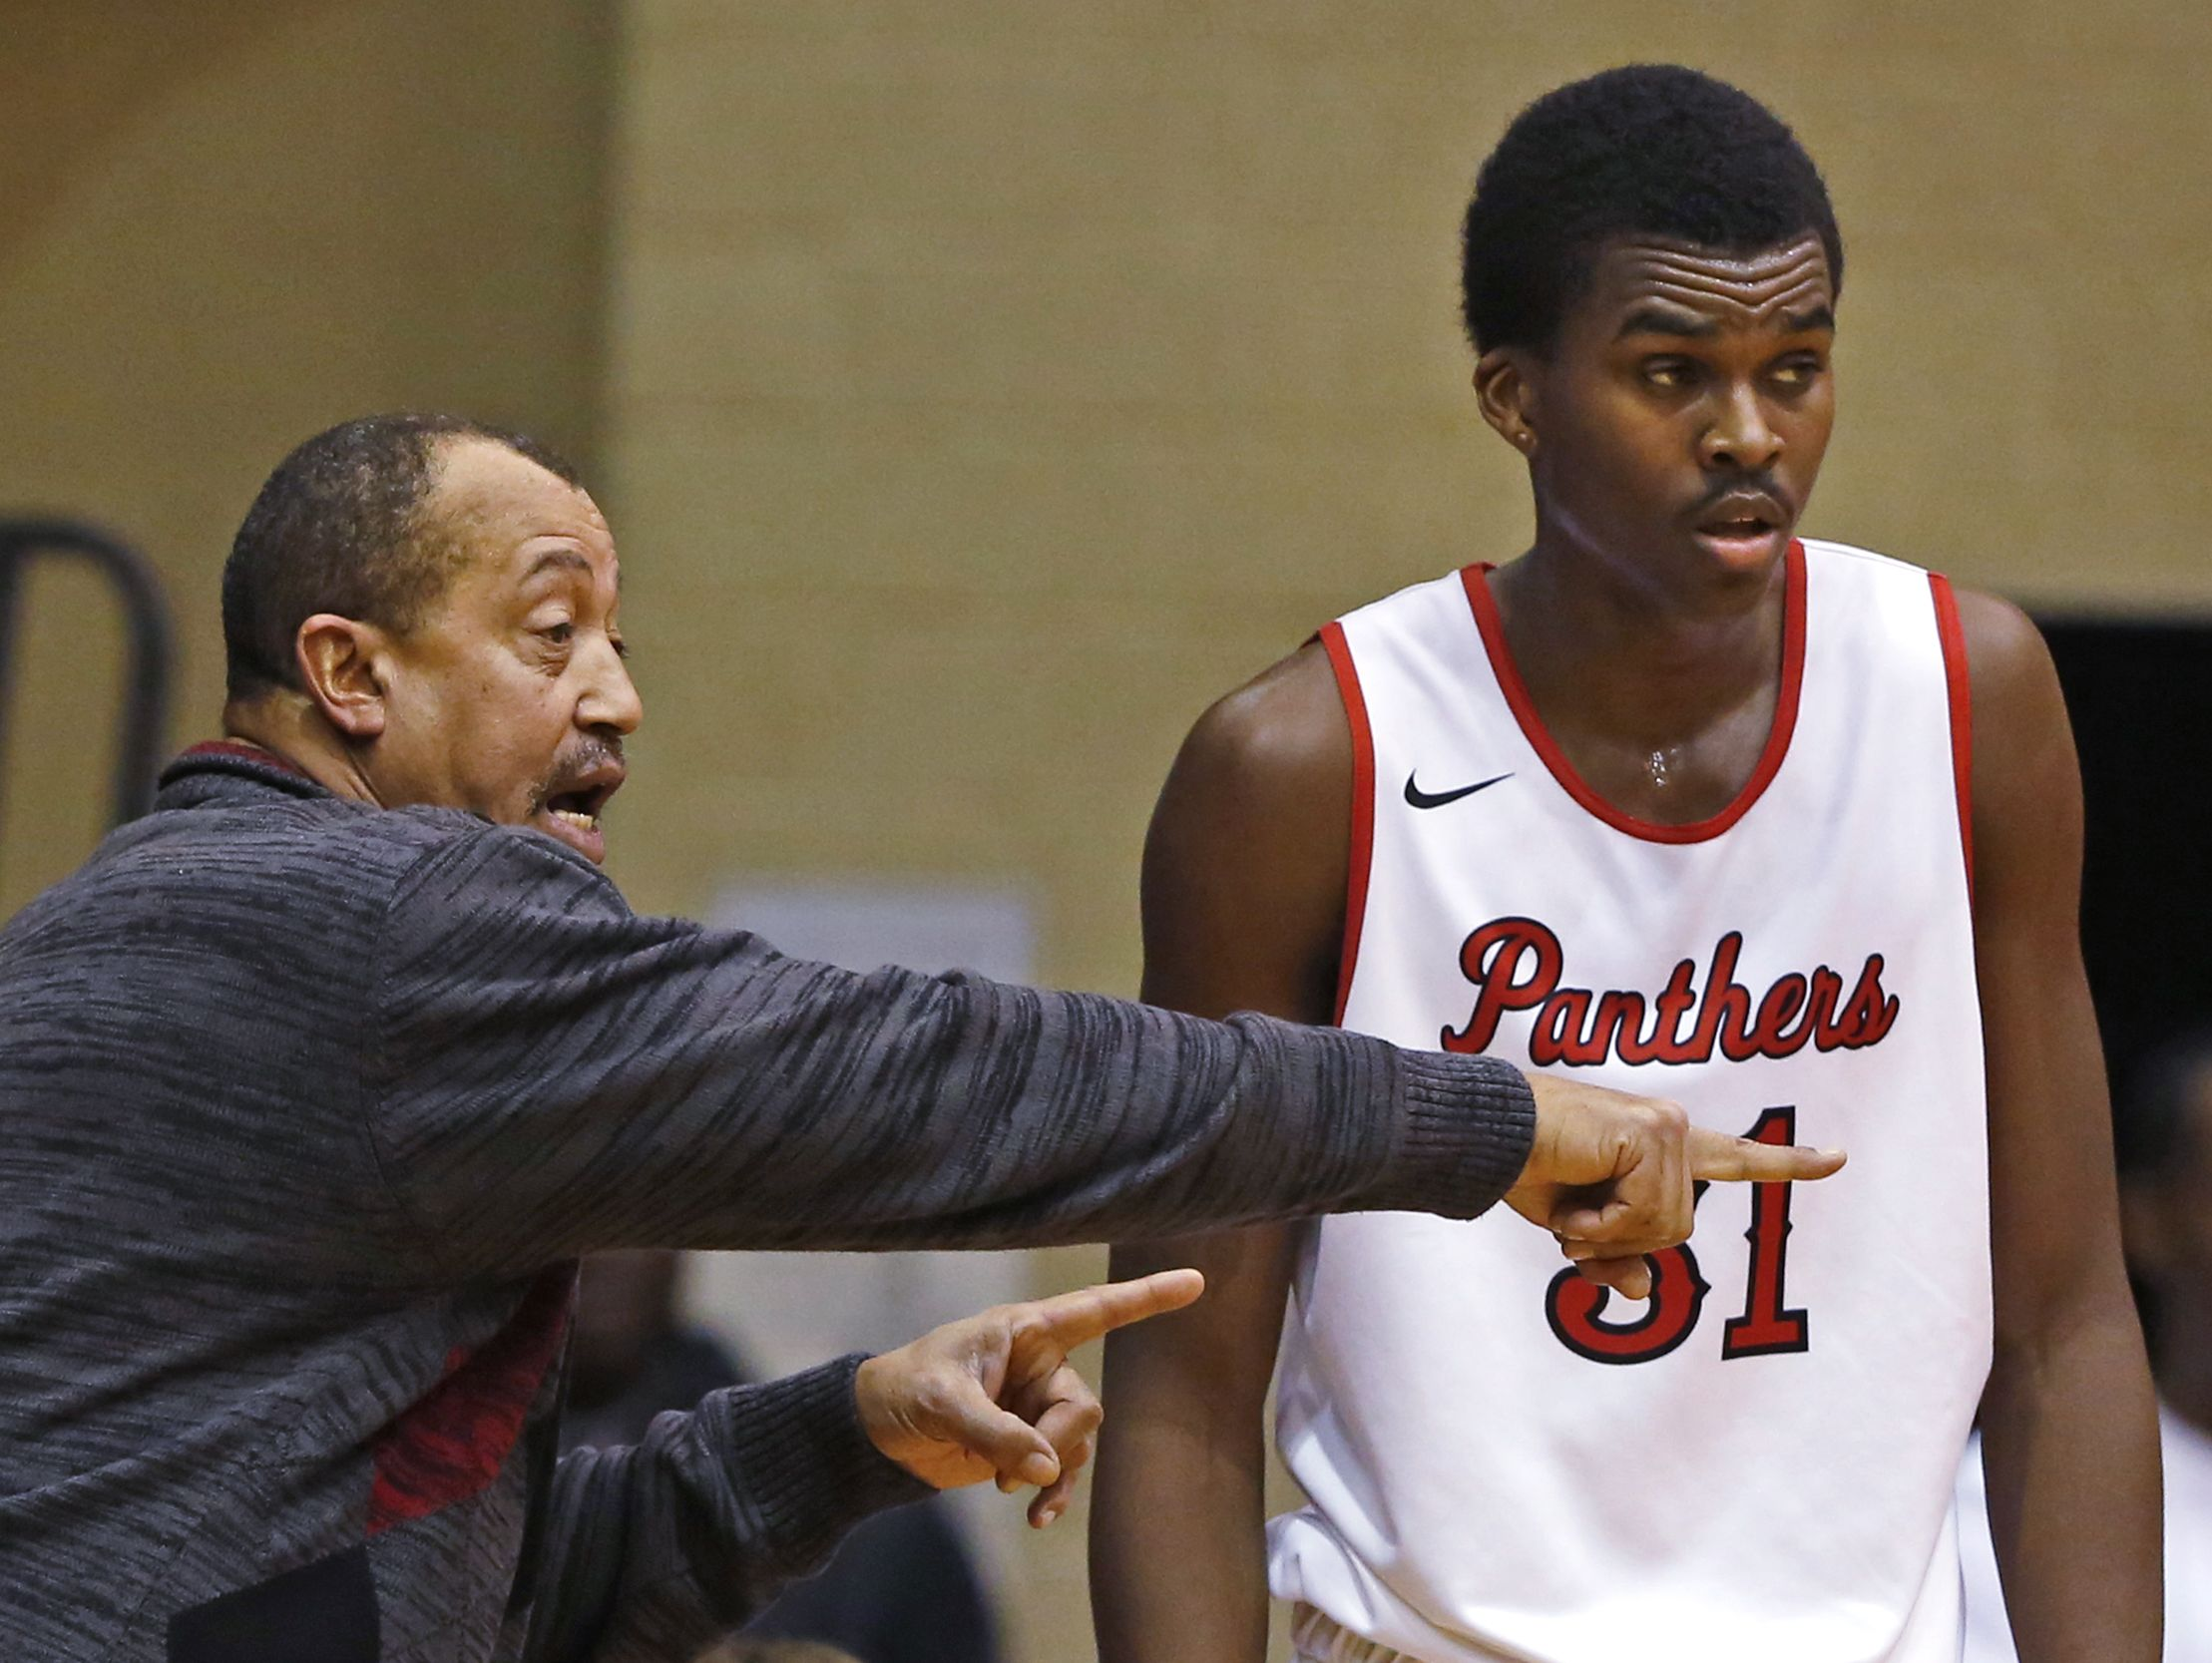 Doug Mitchell (left) and Kris Wilkes are eying North Central's first county title championship since 2012.